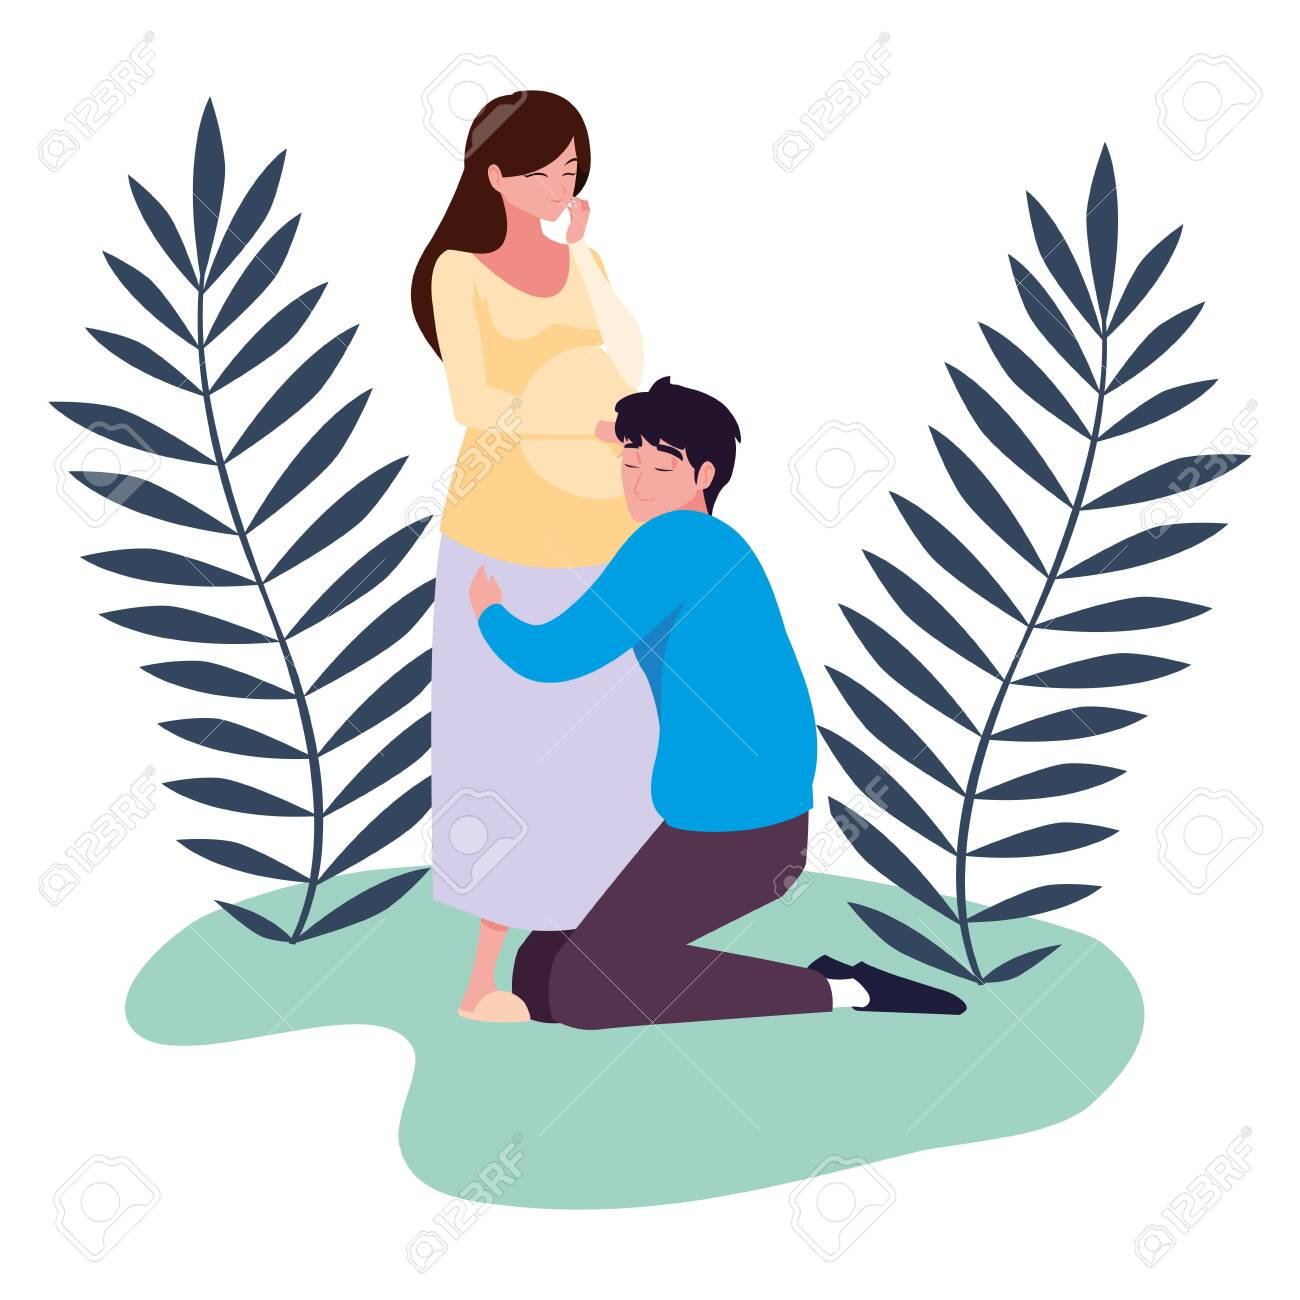 Pregnant woman and man design, Couple family love pregnancy maternity and expecting theme Vector illustration - 154612356